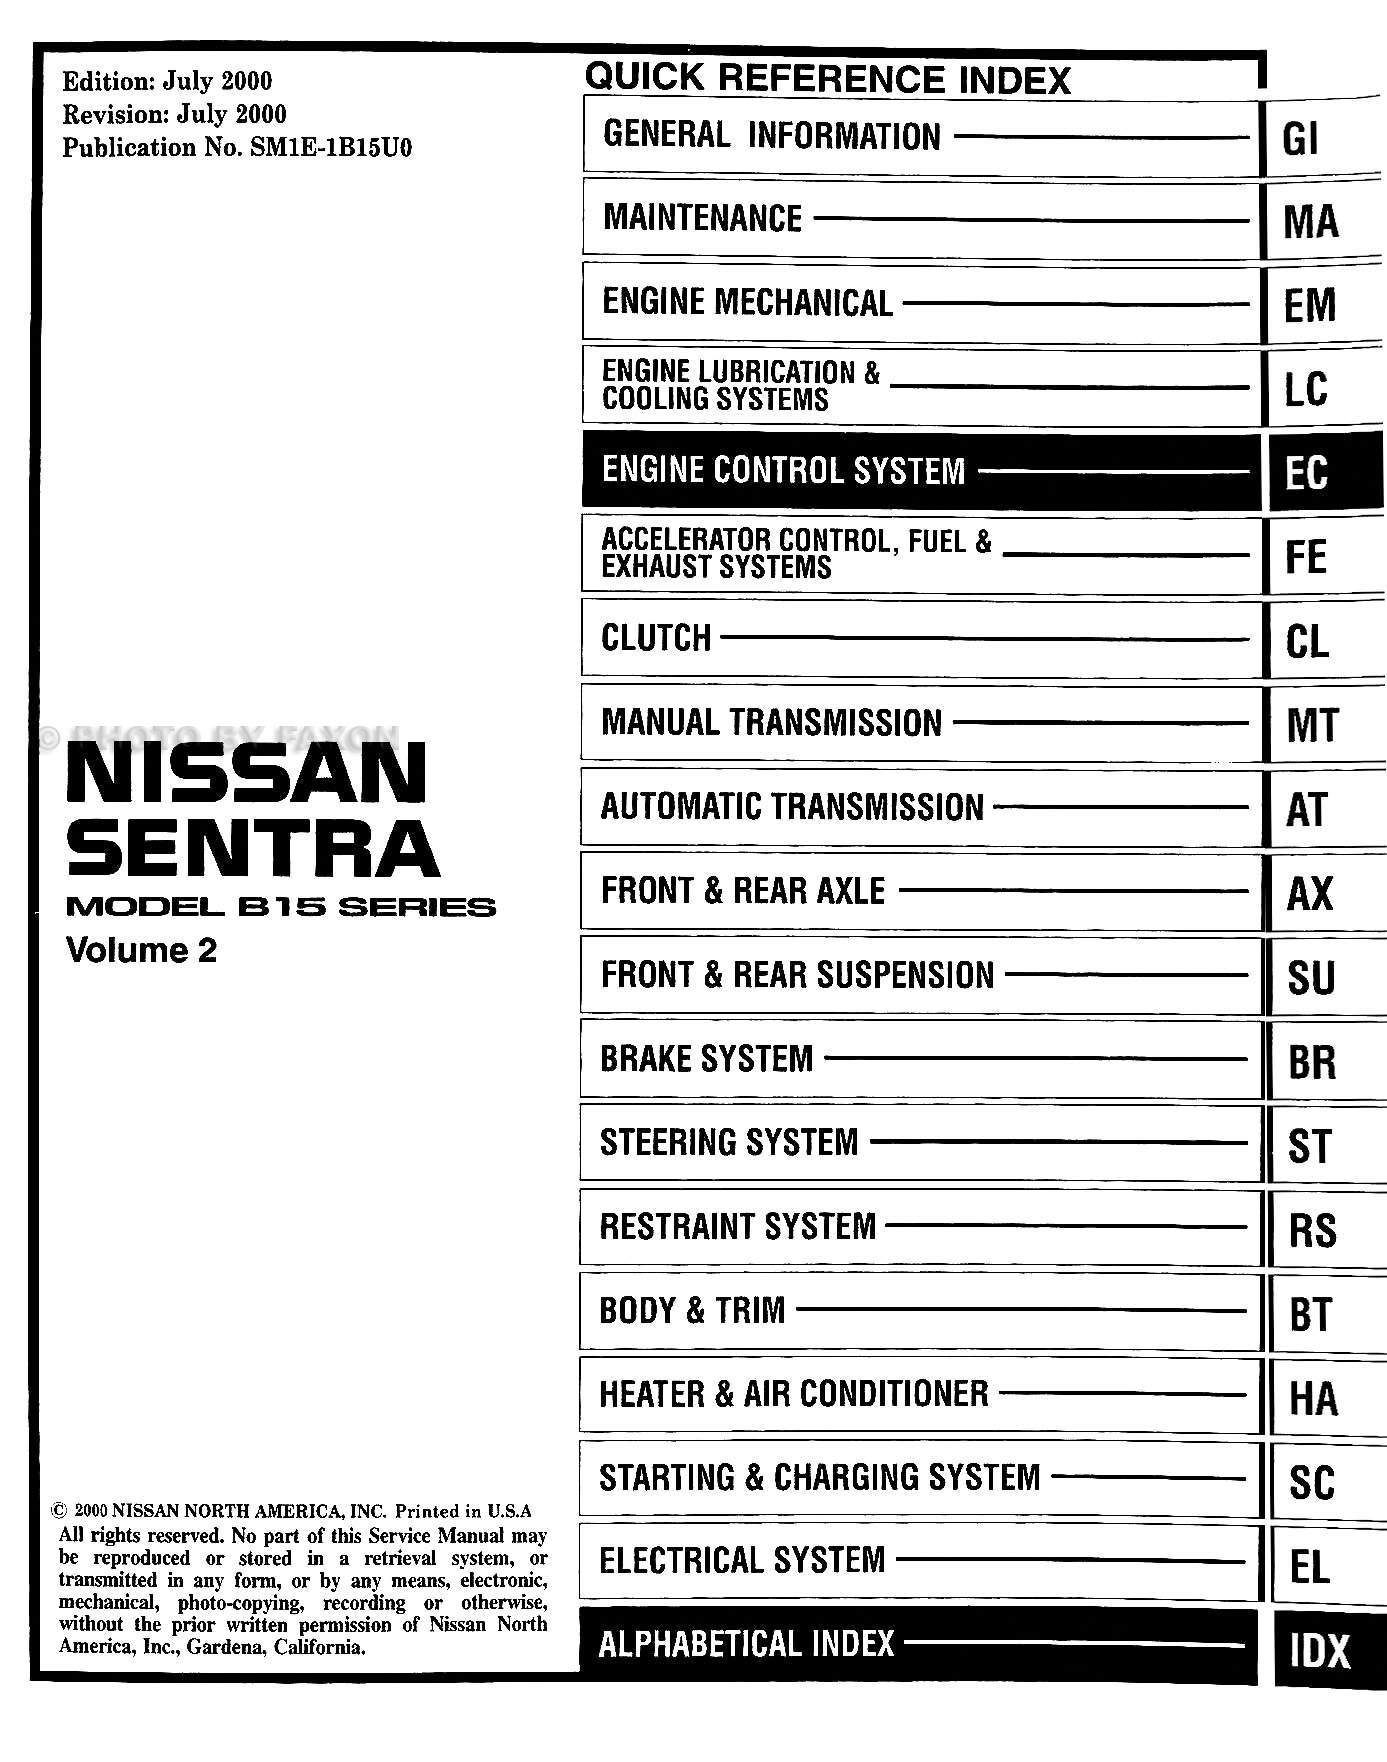 2001NissanSentraORMSet TOC 2001 nissan sentra cd rom repair shop manual Auto Wiring Diagram Library at crackthecode.co